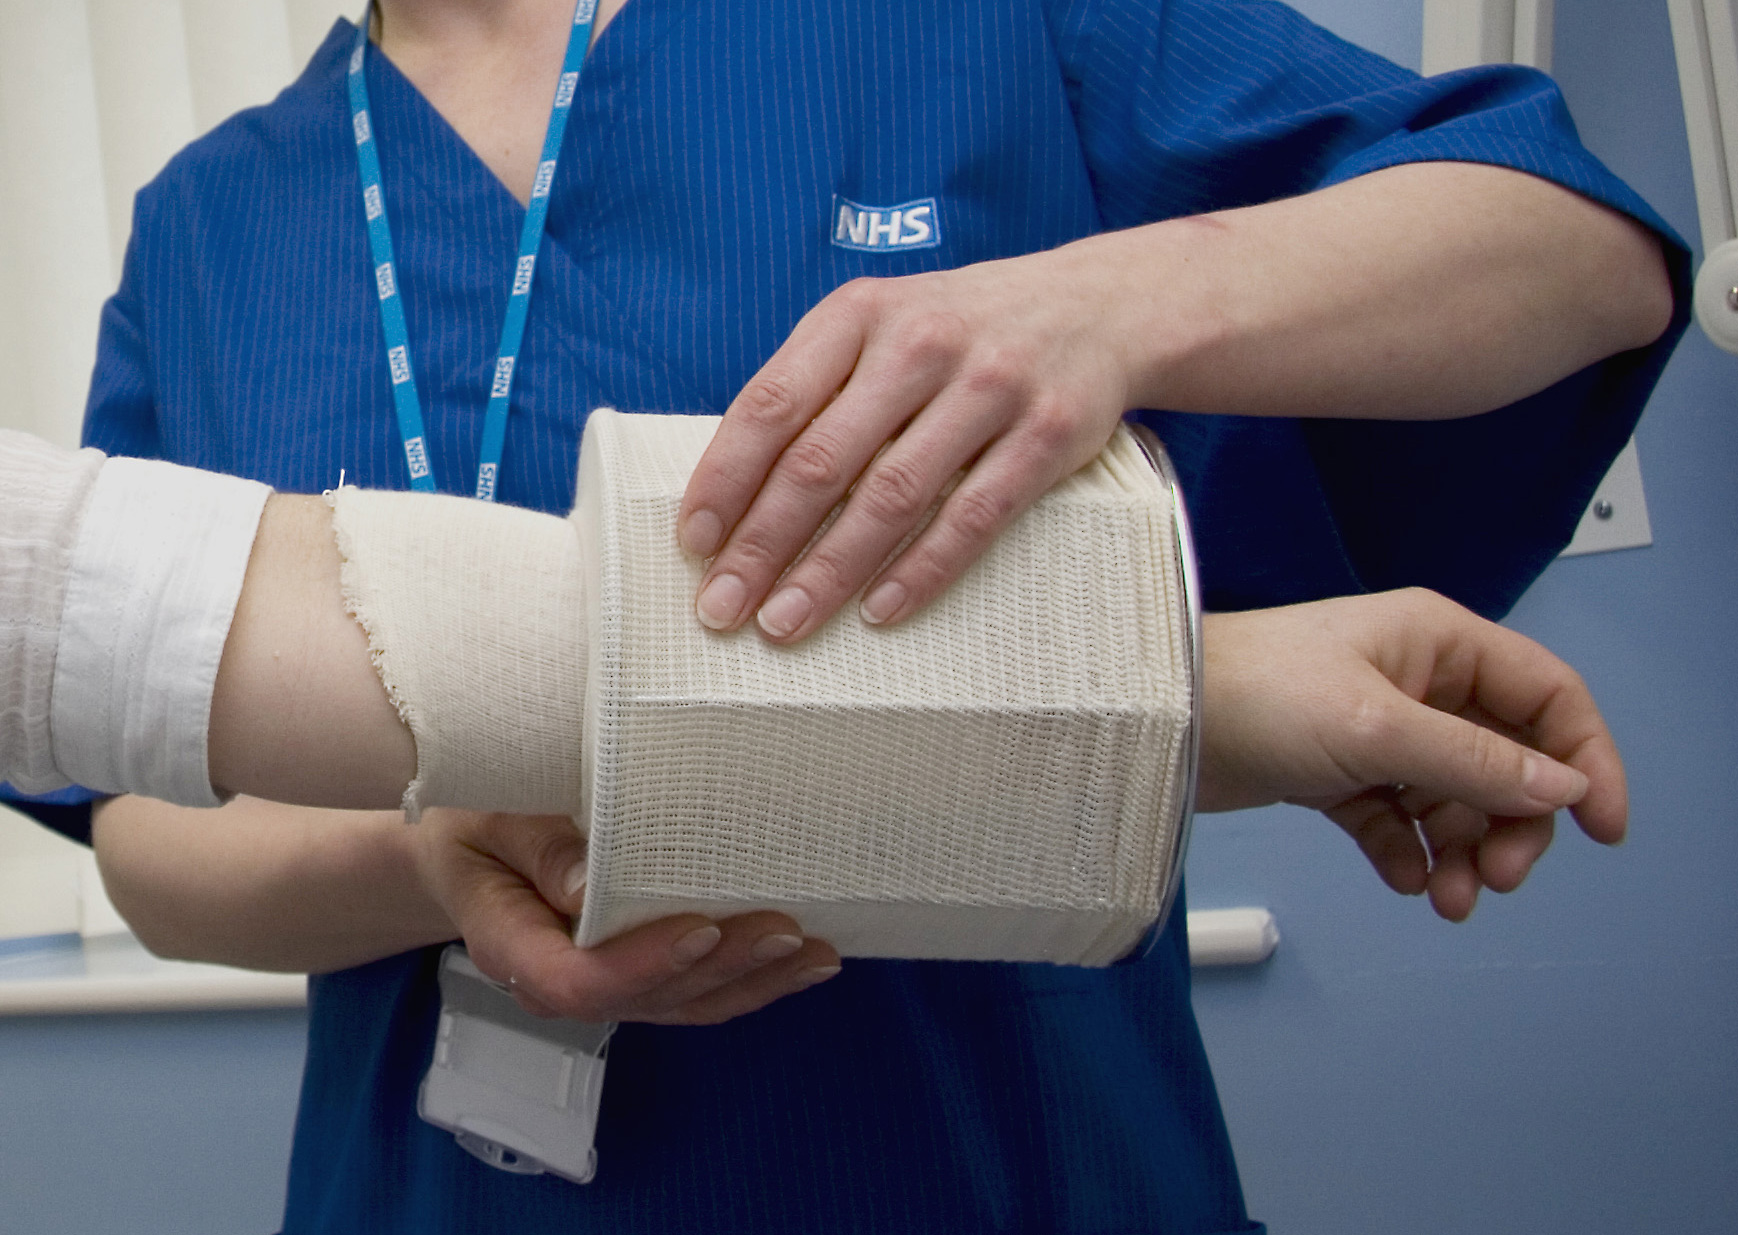 CCG decides on future of NHS urgent care services in North